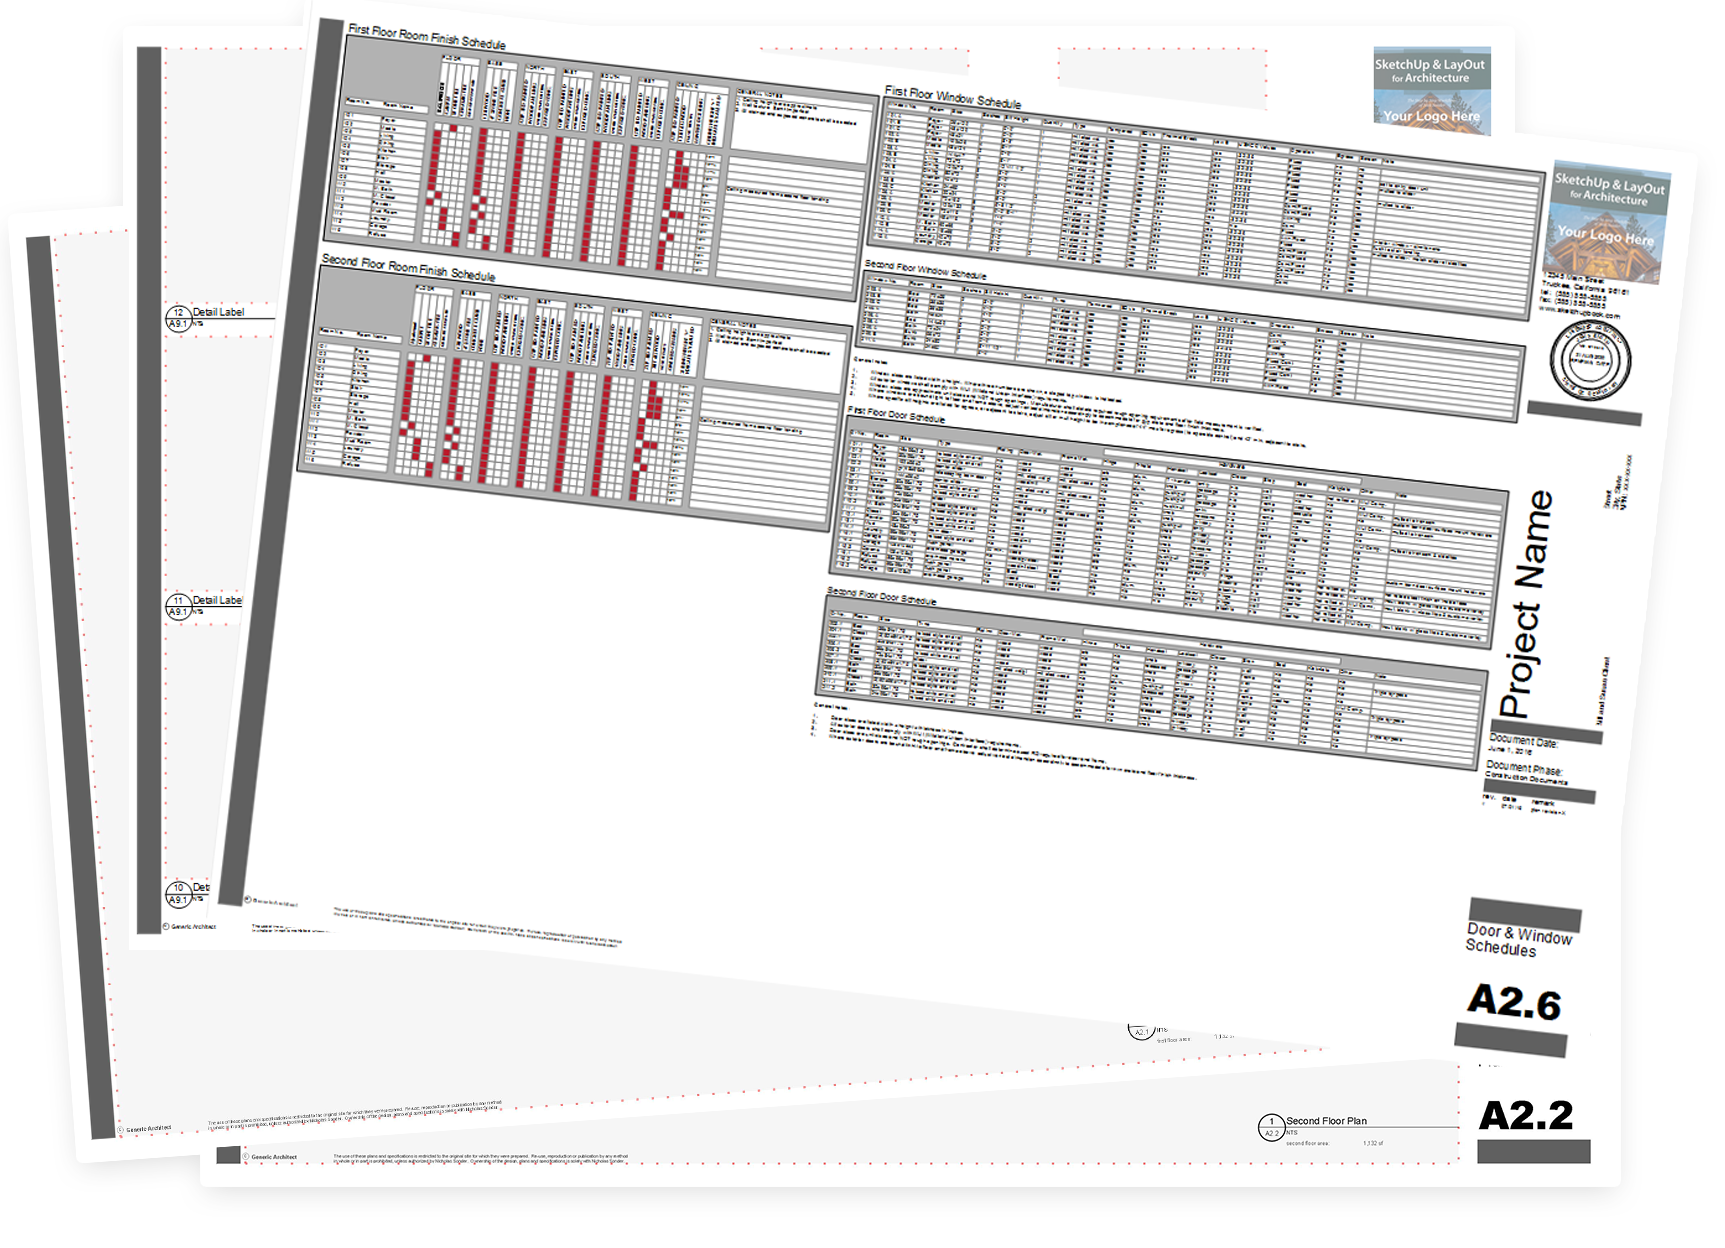 Sketchup Layout For Architecture Book The Step By Workflow Sample Of Electrical Plan Resources Included With Each